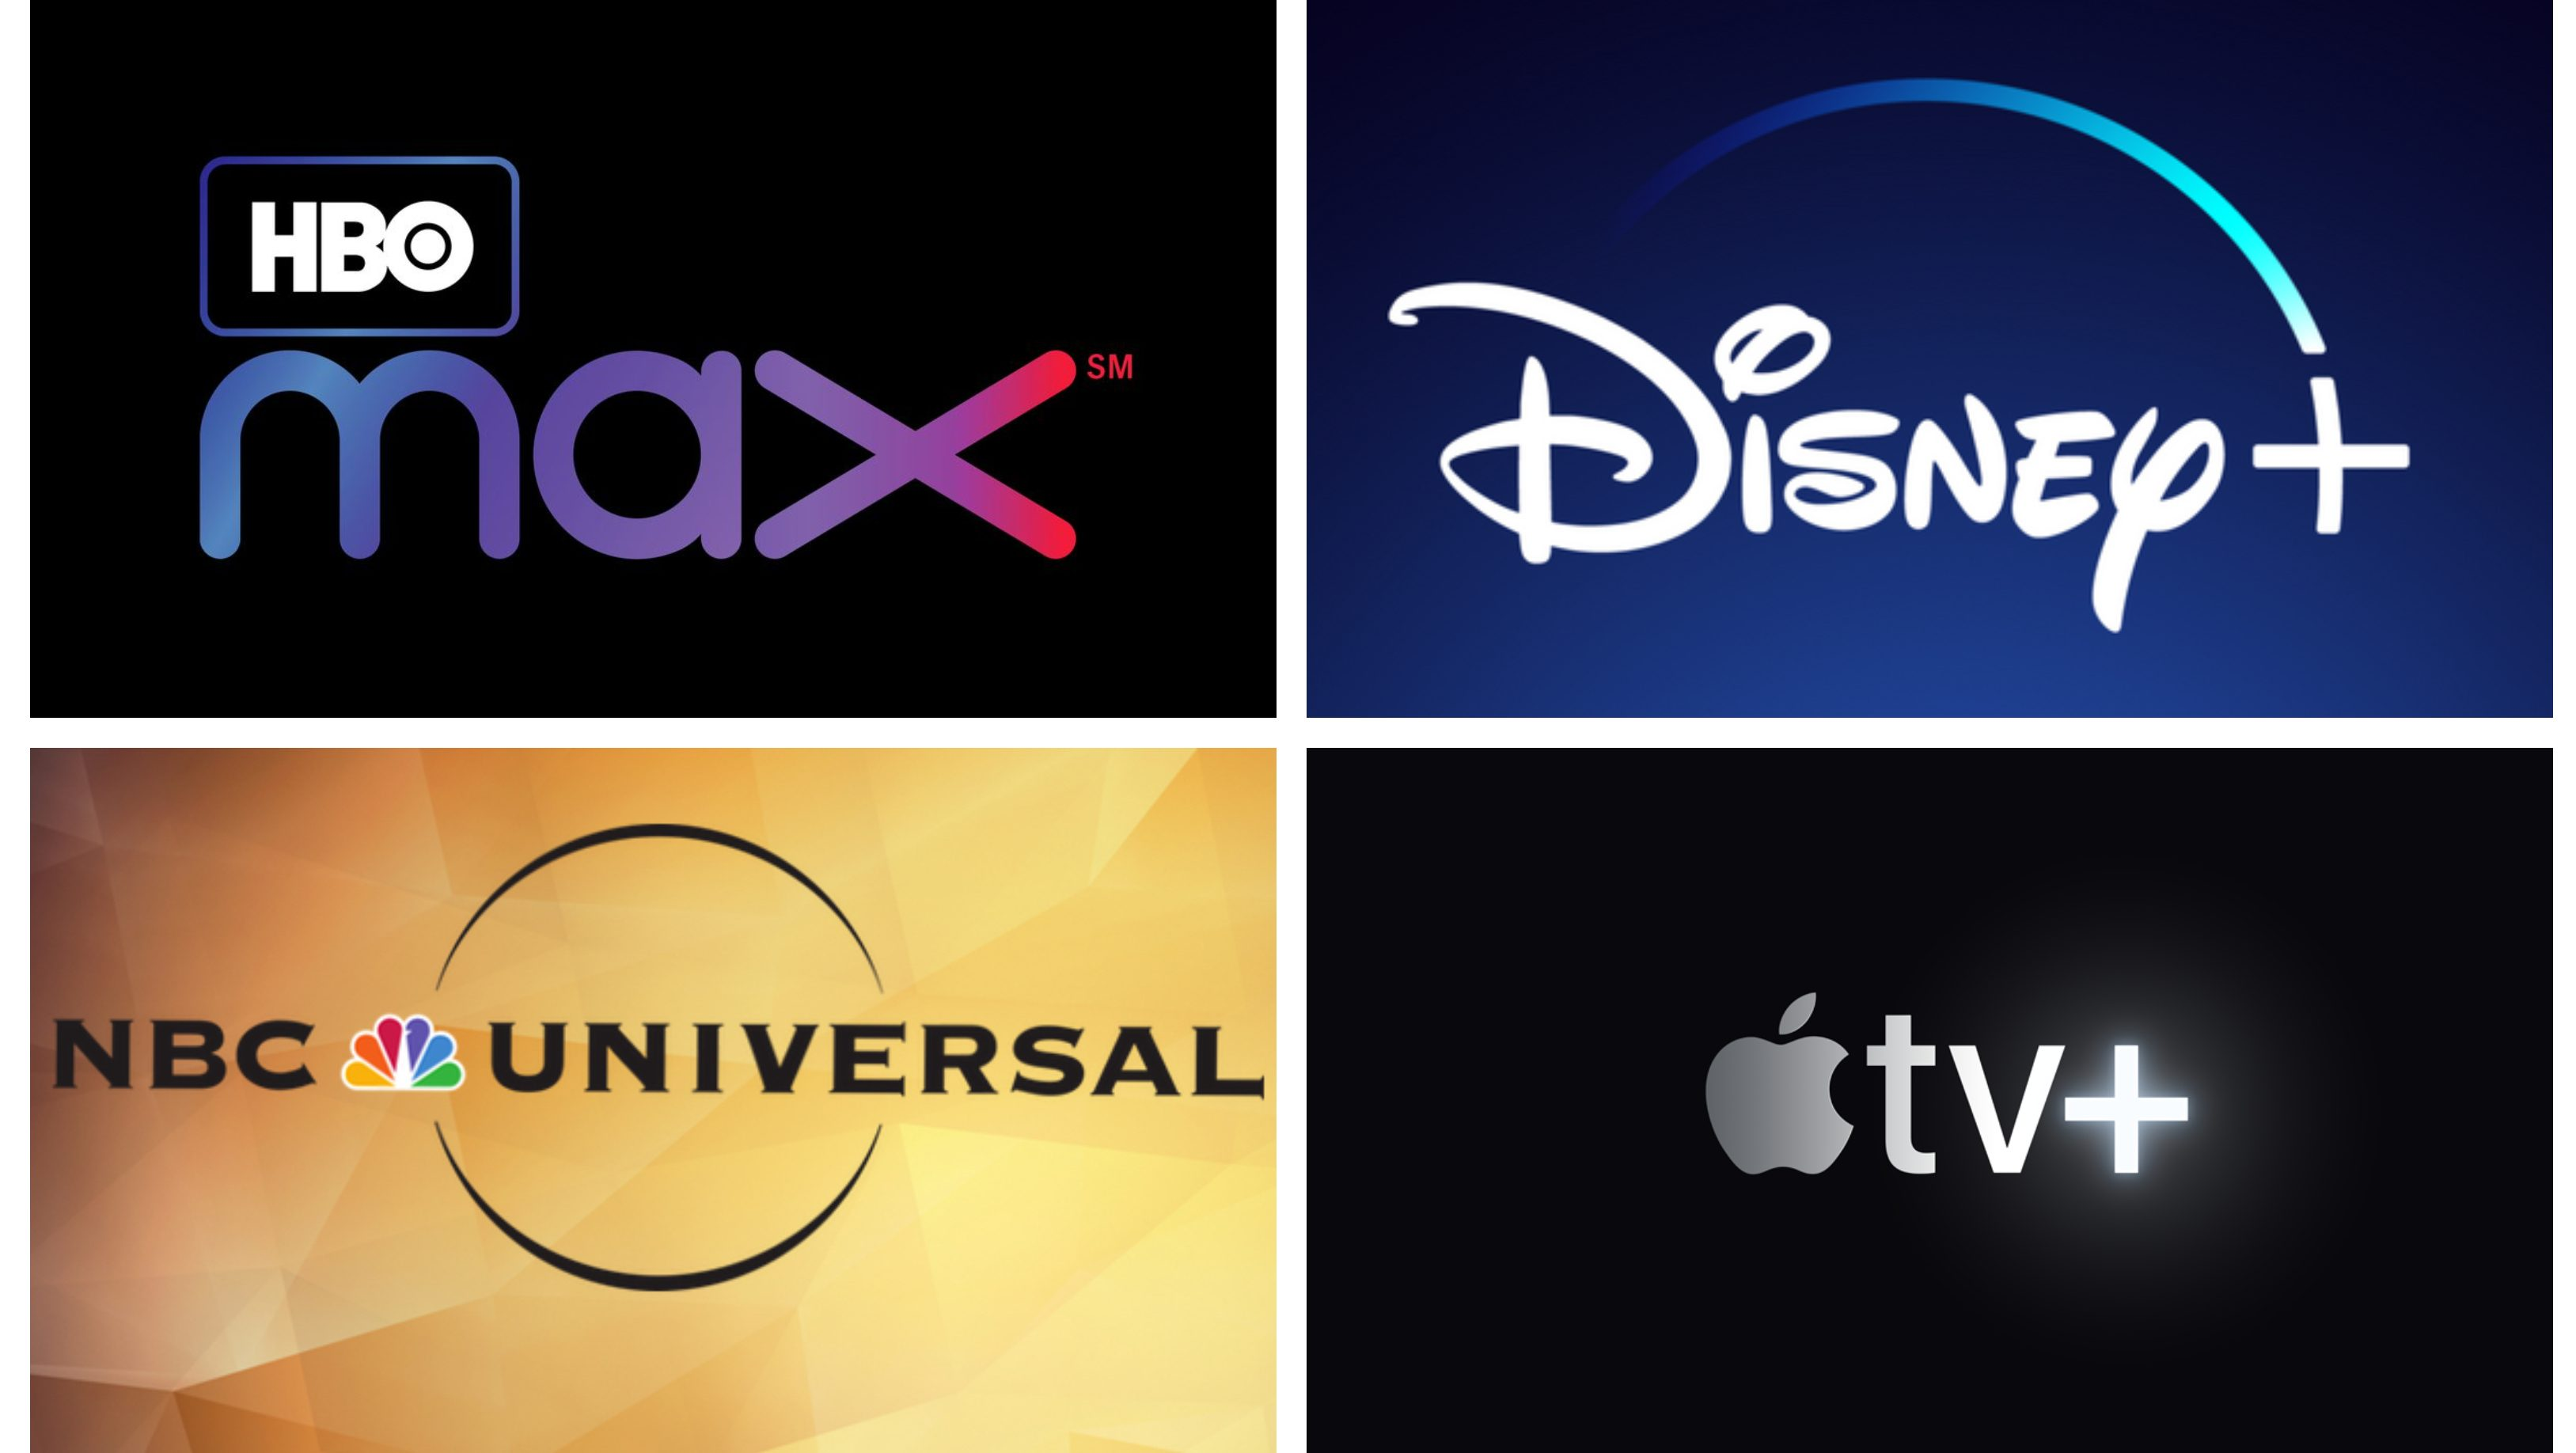 A streaming guide to Disney+, Apple TV+, HBO Max, and NBCUniversal